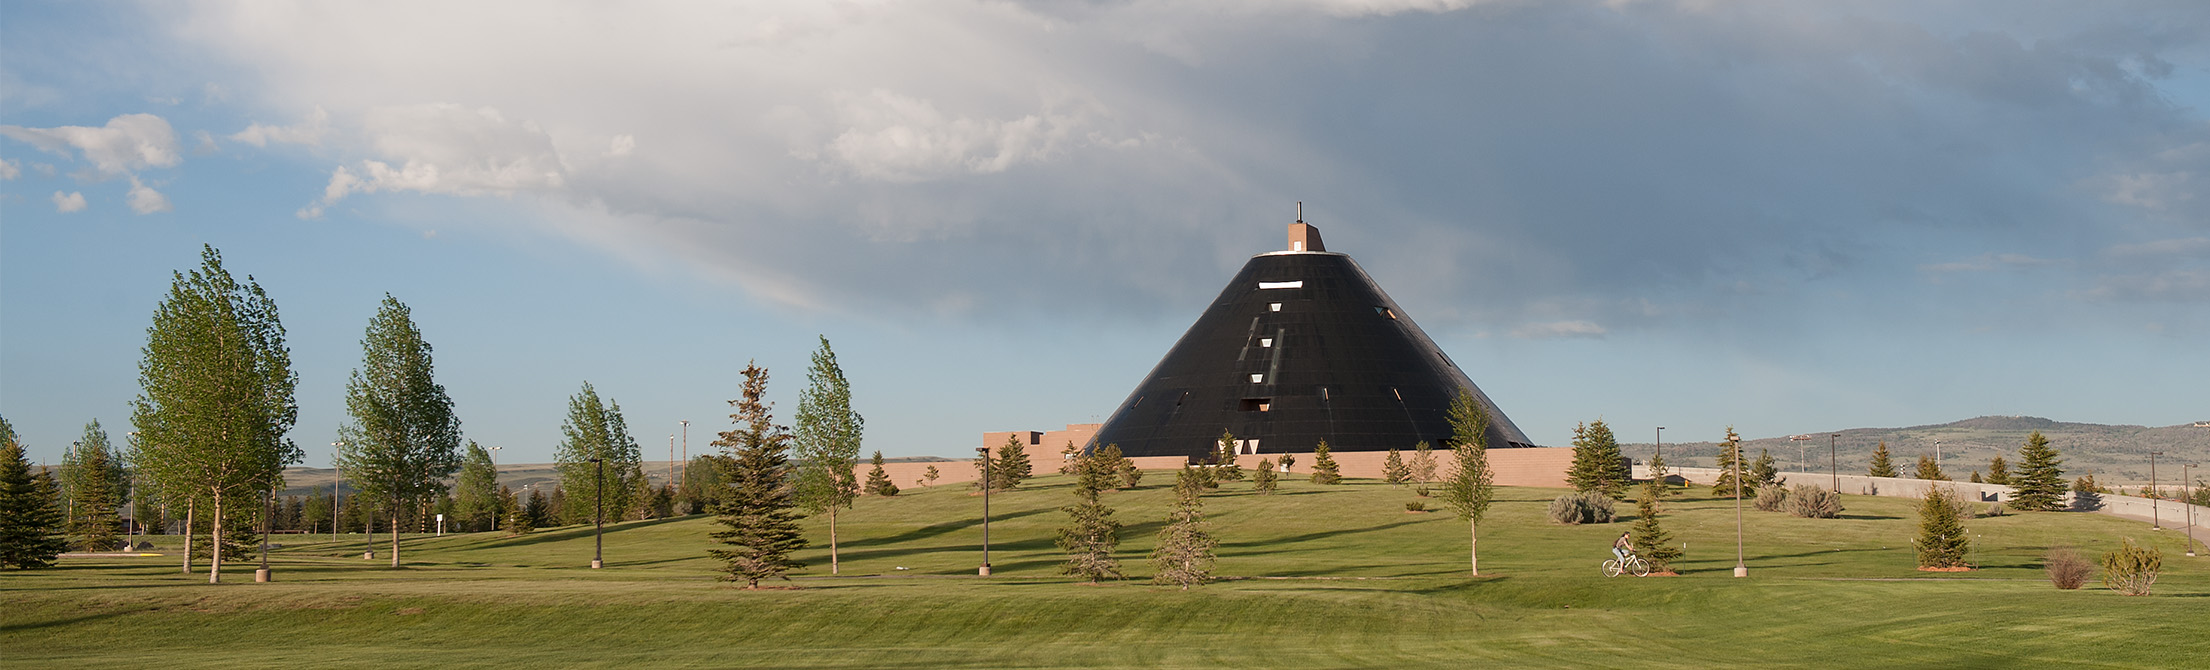 American Heritage Center Home Page | University of Wyoming